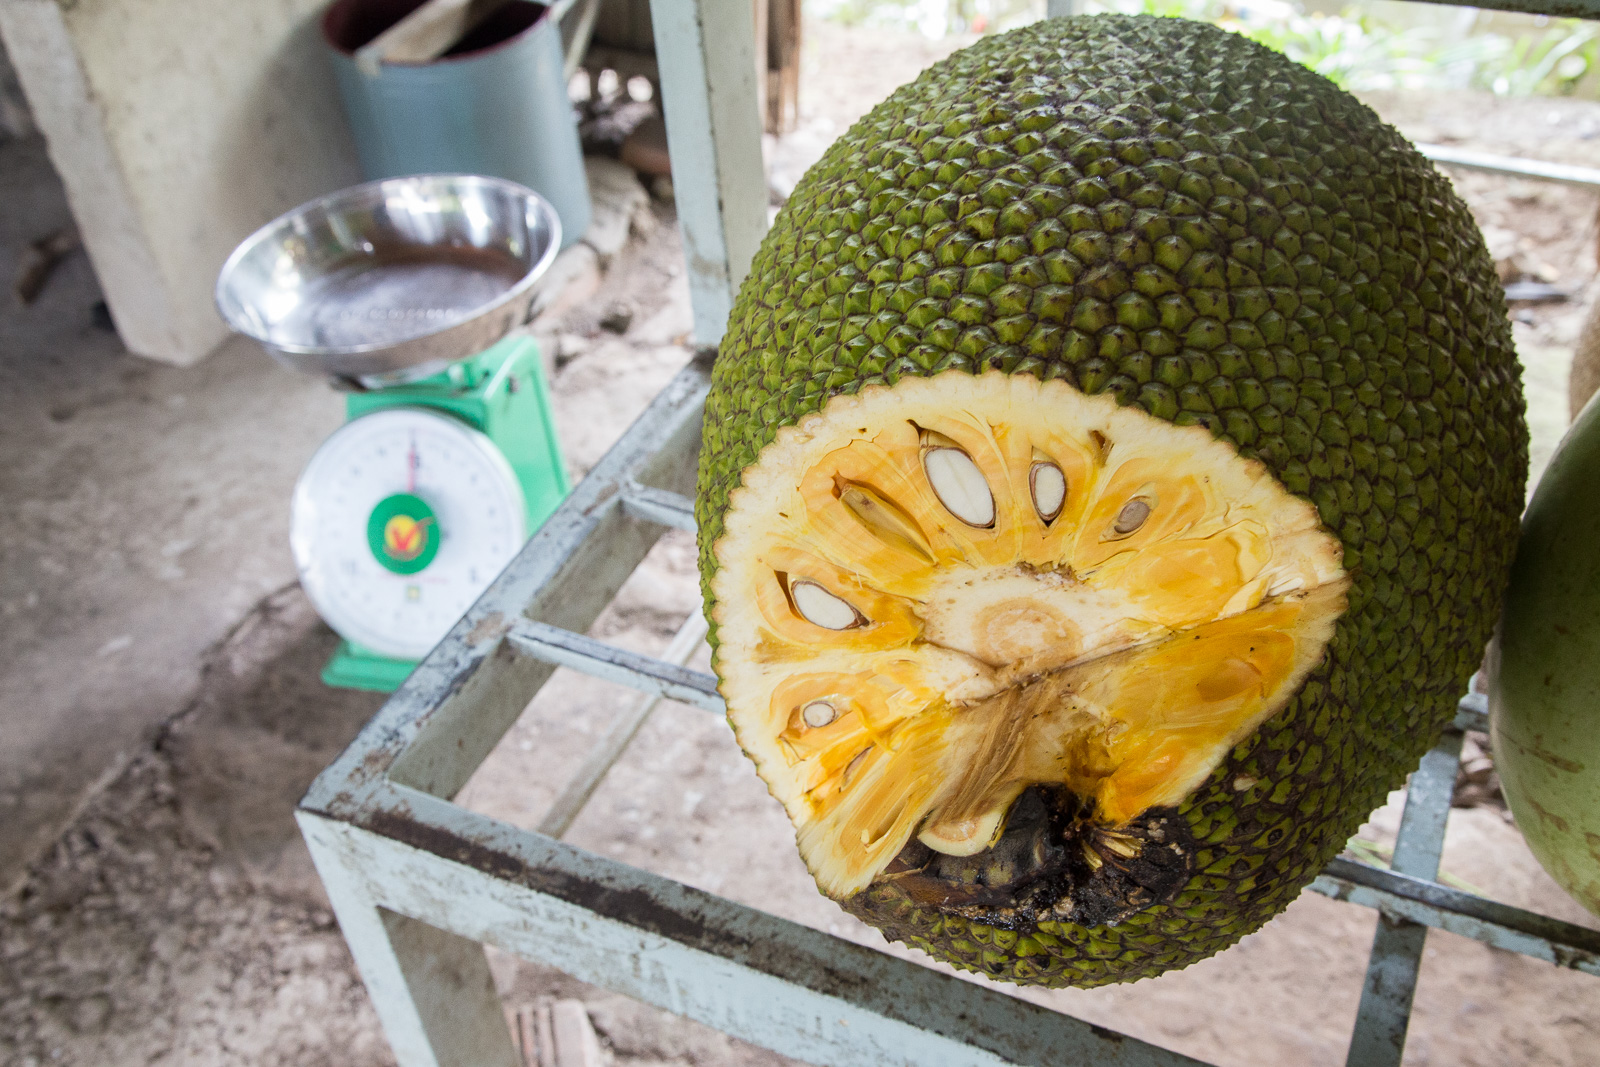 A jackfruit in cross-section. Although cheaper to buy like this there are plenty of street-vendors selling pre-shucked fruit minus the weird textured sinews and pips at a slightly higher price - a tropical snack ready-to-go.